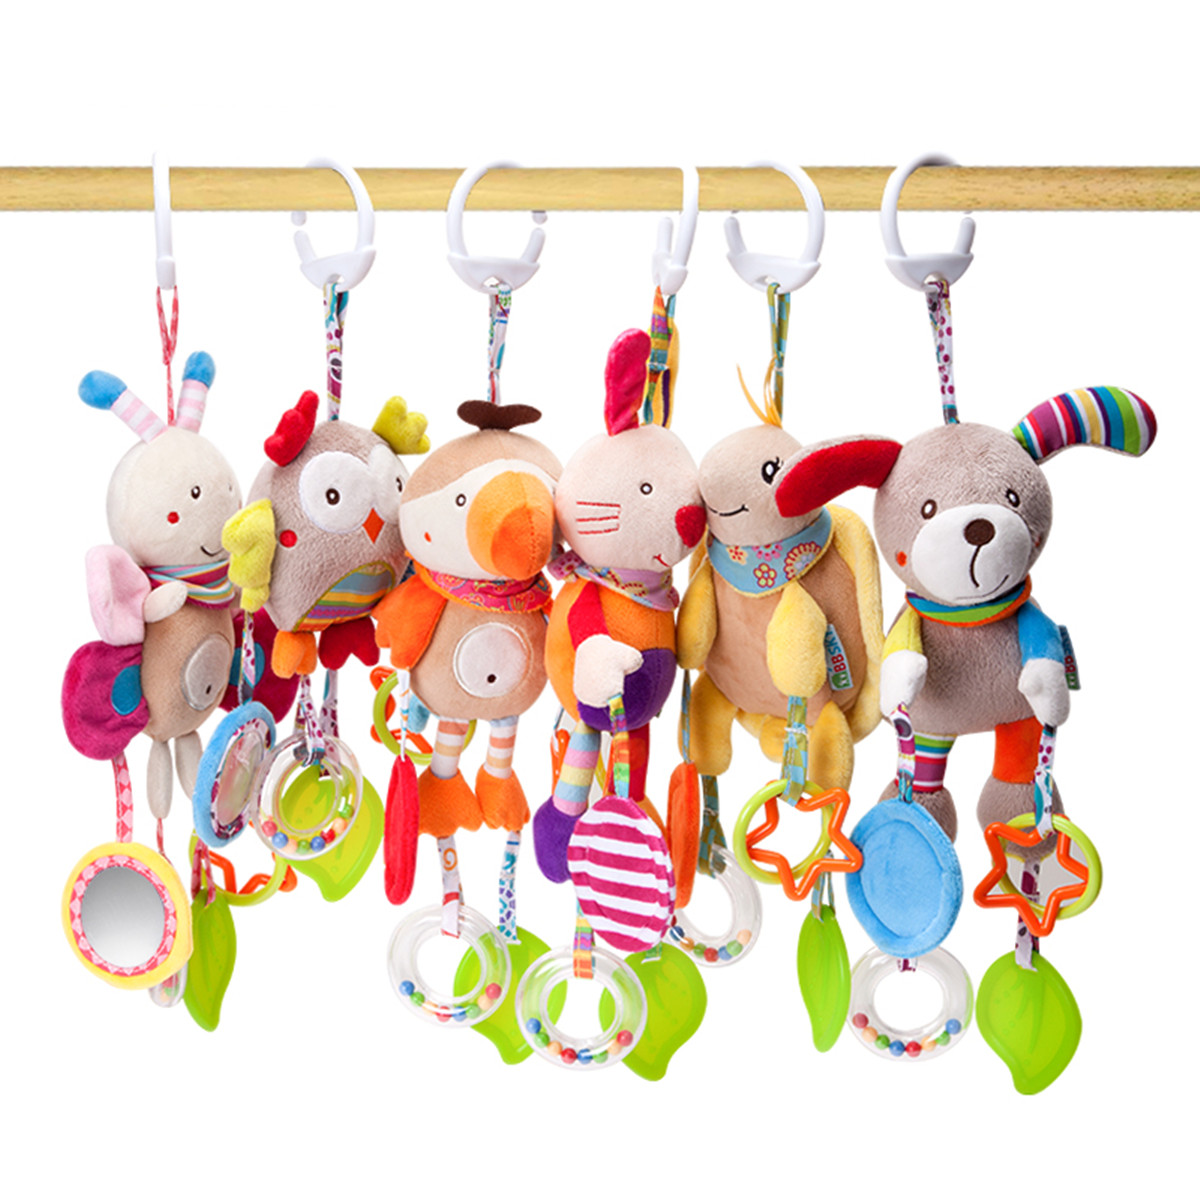 Pet/Dog/Puppy/Baby Teethers Pendant Toy Rattle Bed Bell Cute Cartoon Animal Wind Chimes Bed Car Hang